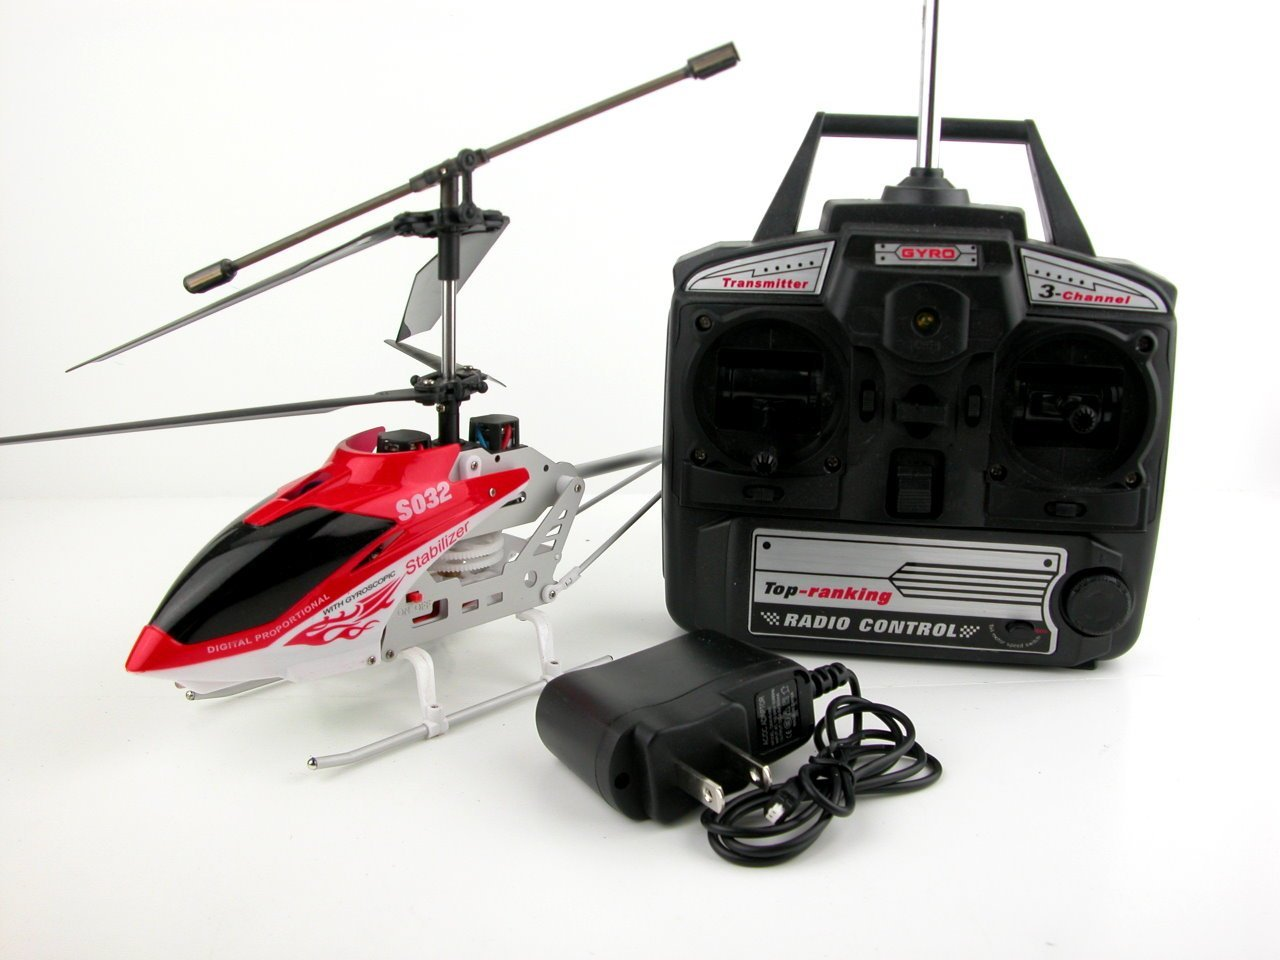 syma s032g review